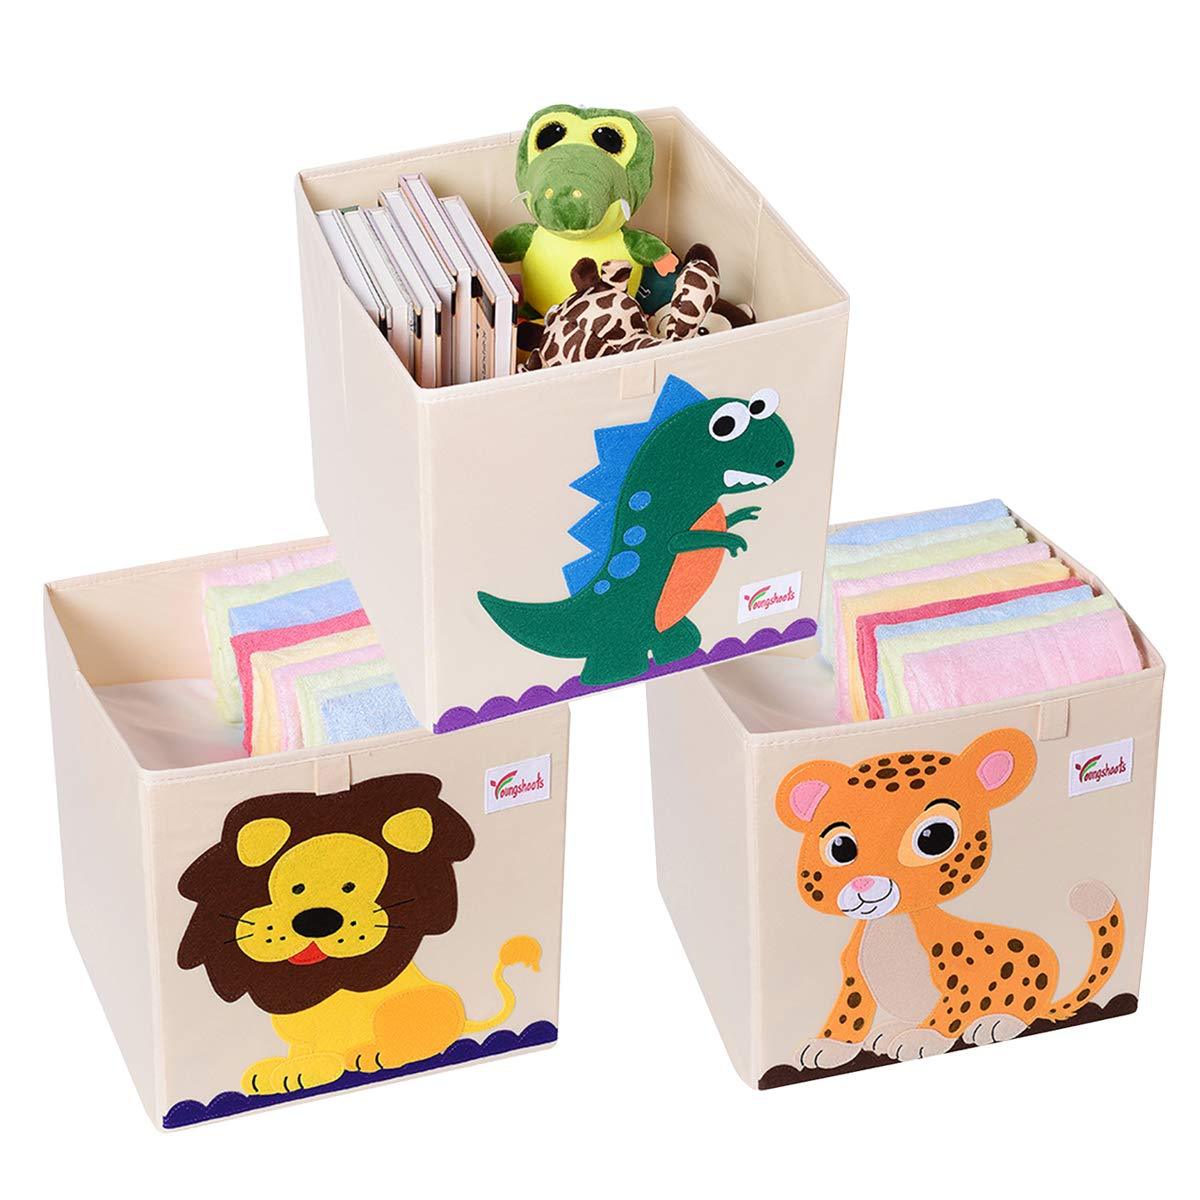 Bee SJINC Toy Storage Bins with Lids Toy Box Organizer Stackable Large Toy Chest for Girls Boys Kids